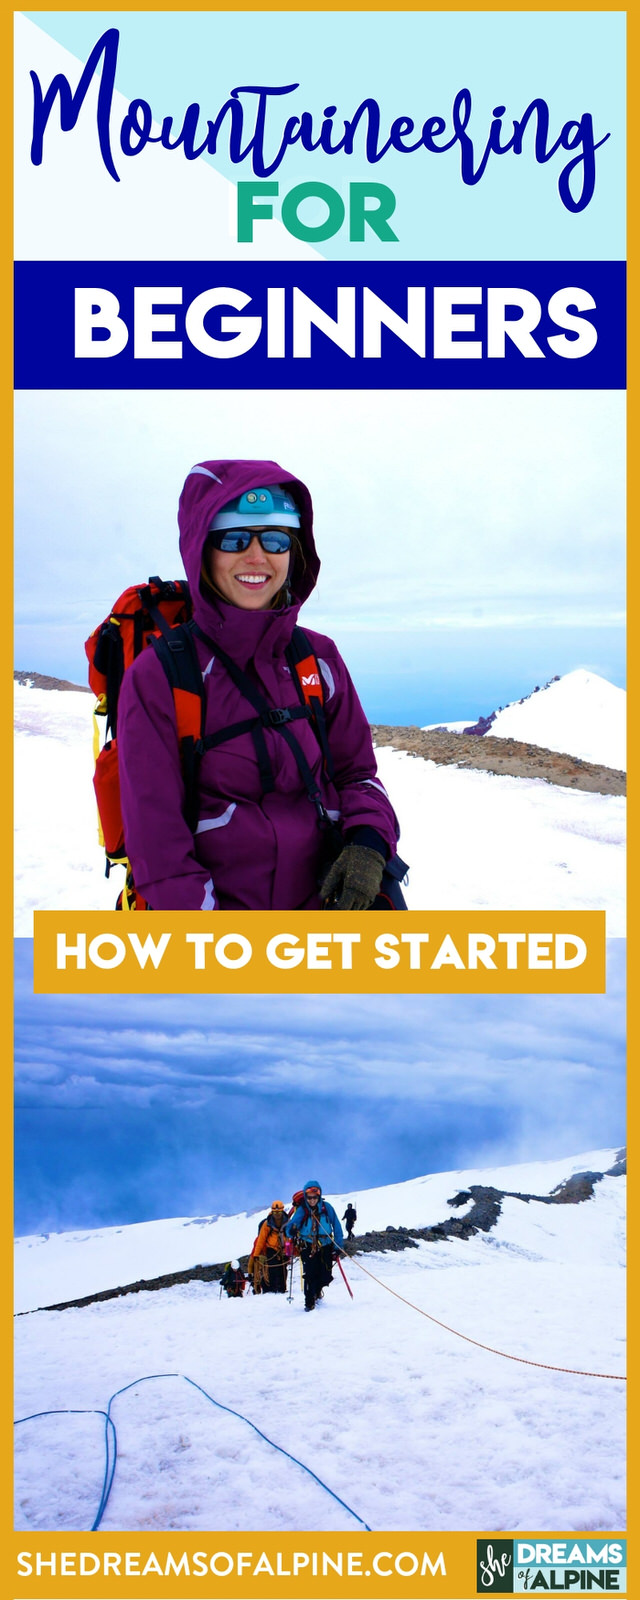 Mountaineering for Beginners - How to Get Started Mountaineering